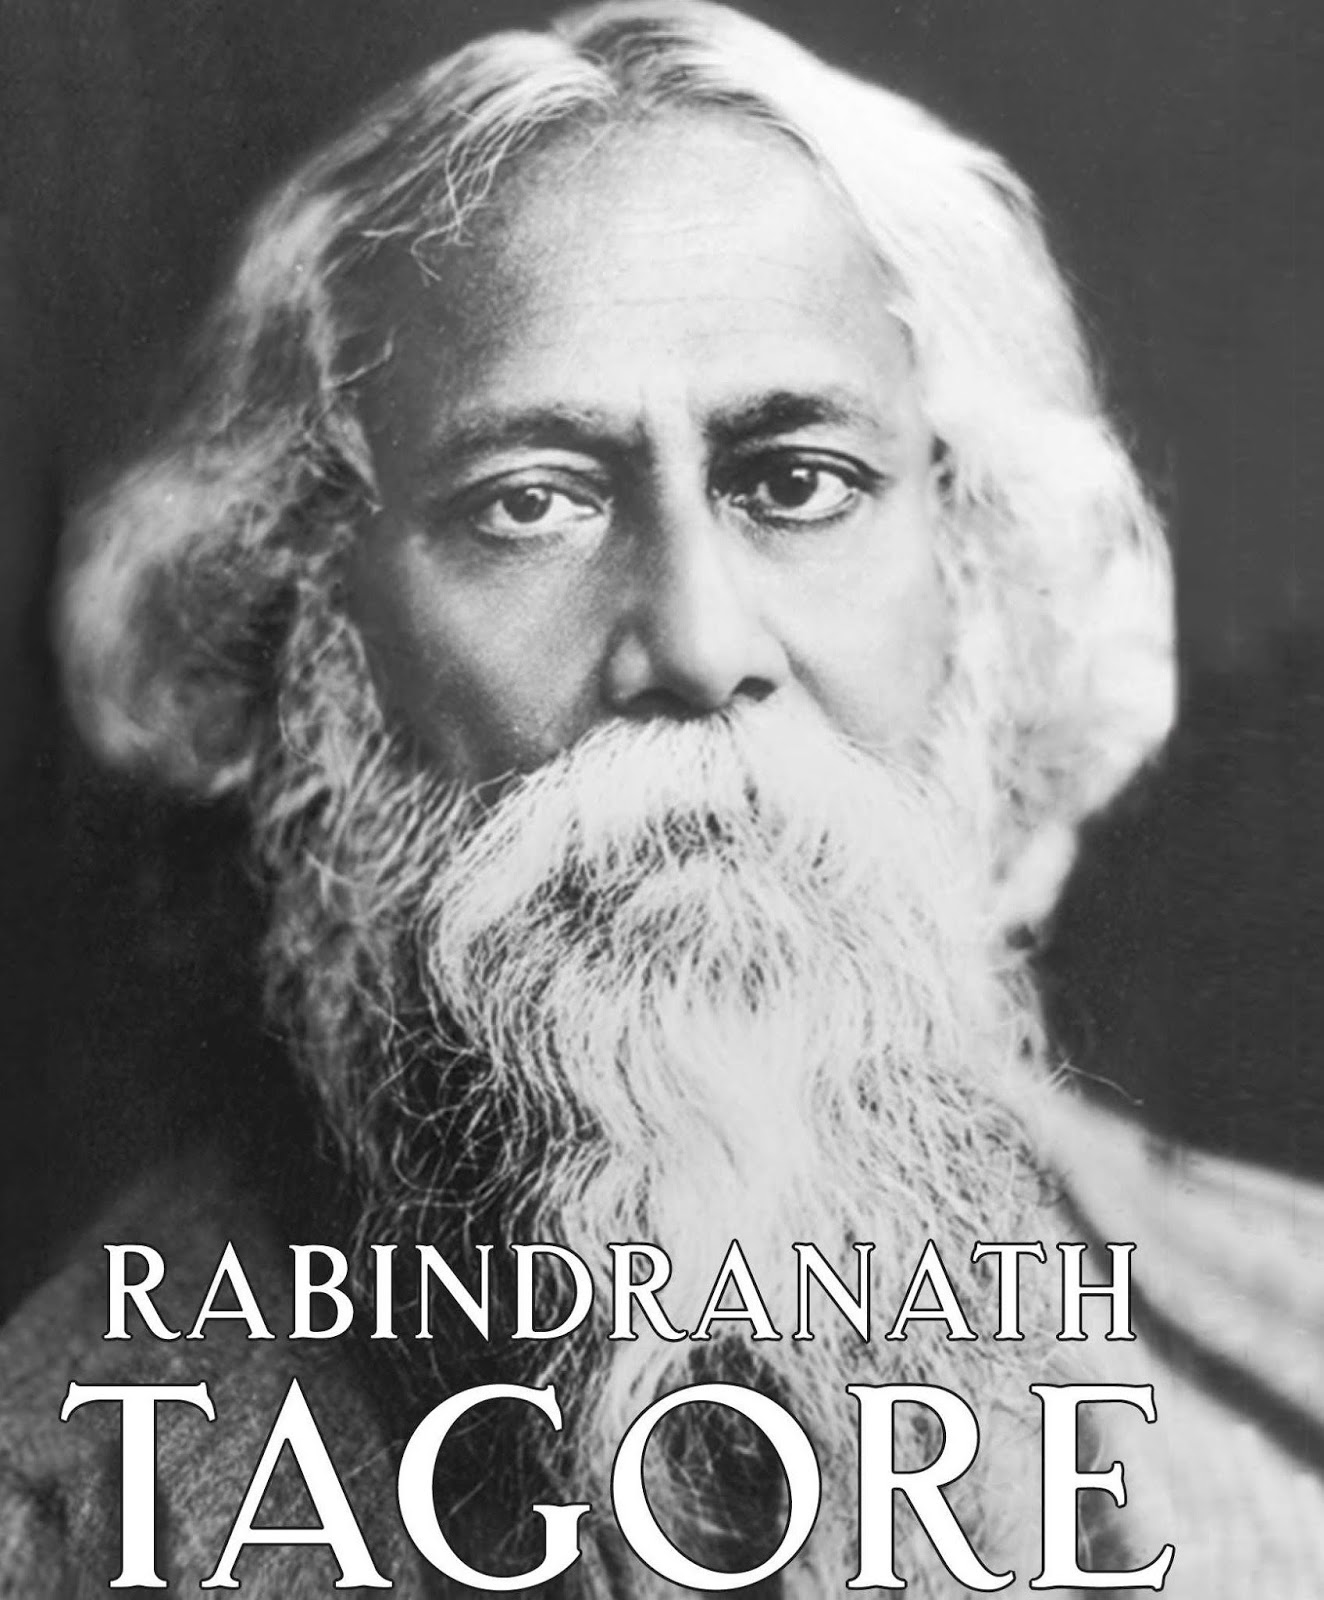 short essay on rabindranath tagore an essay on rabindranath tagore the dreaming unicornrabindranath tagore gora